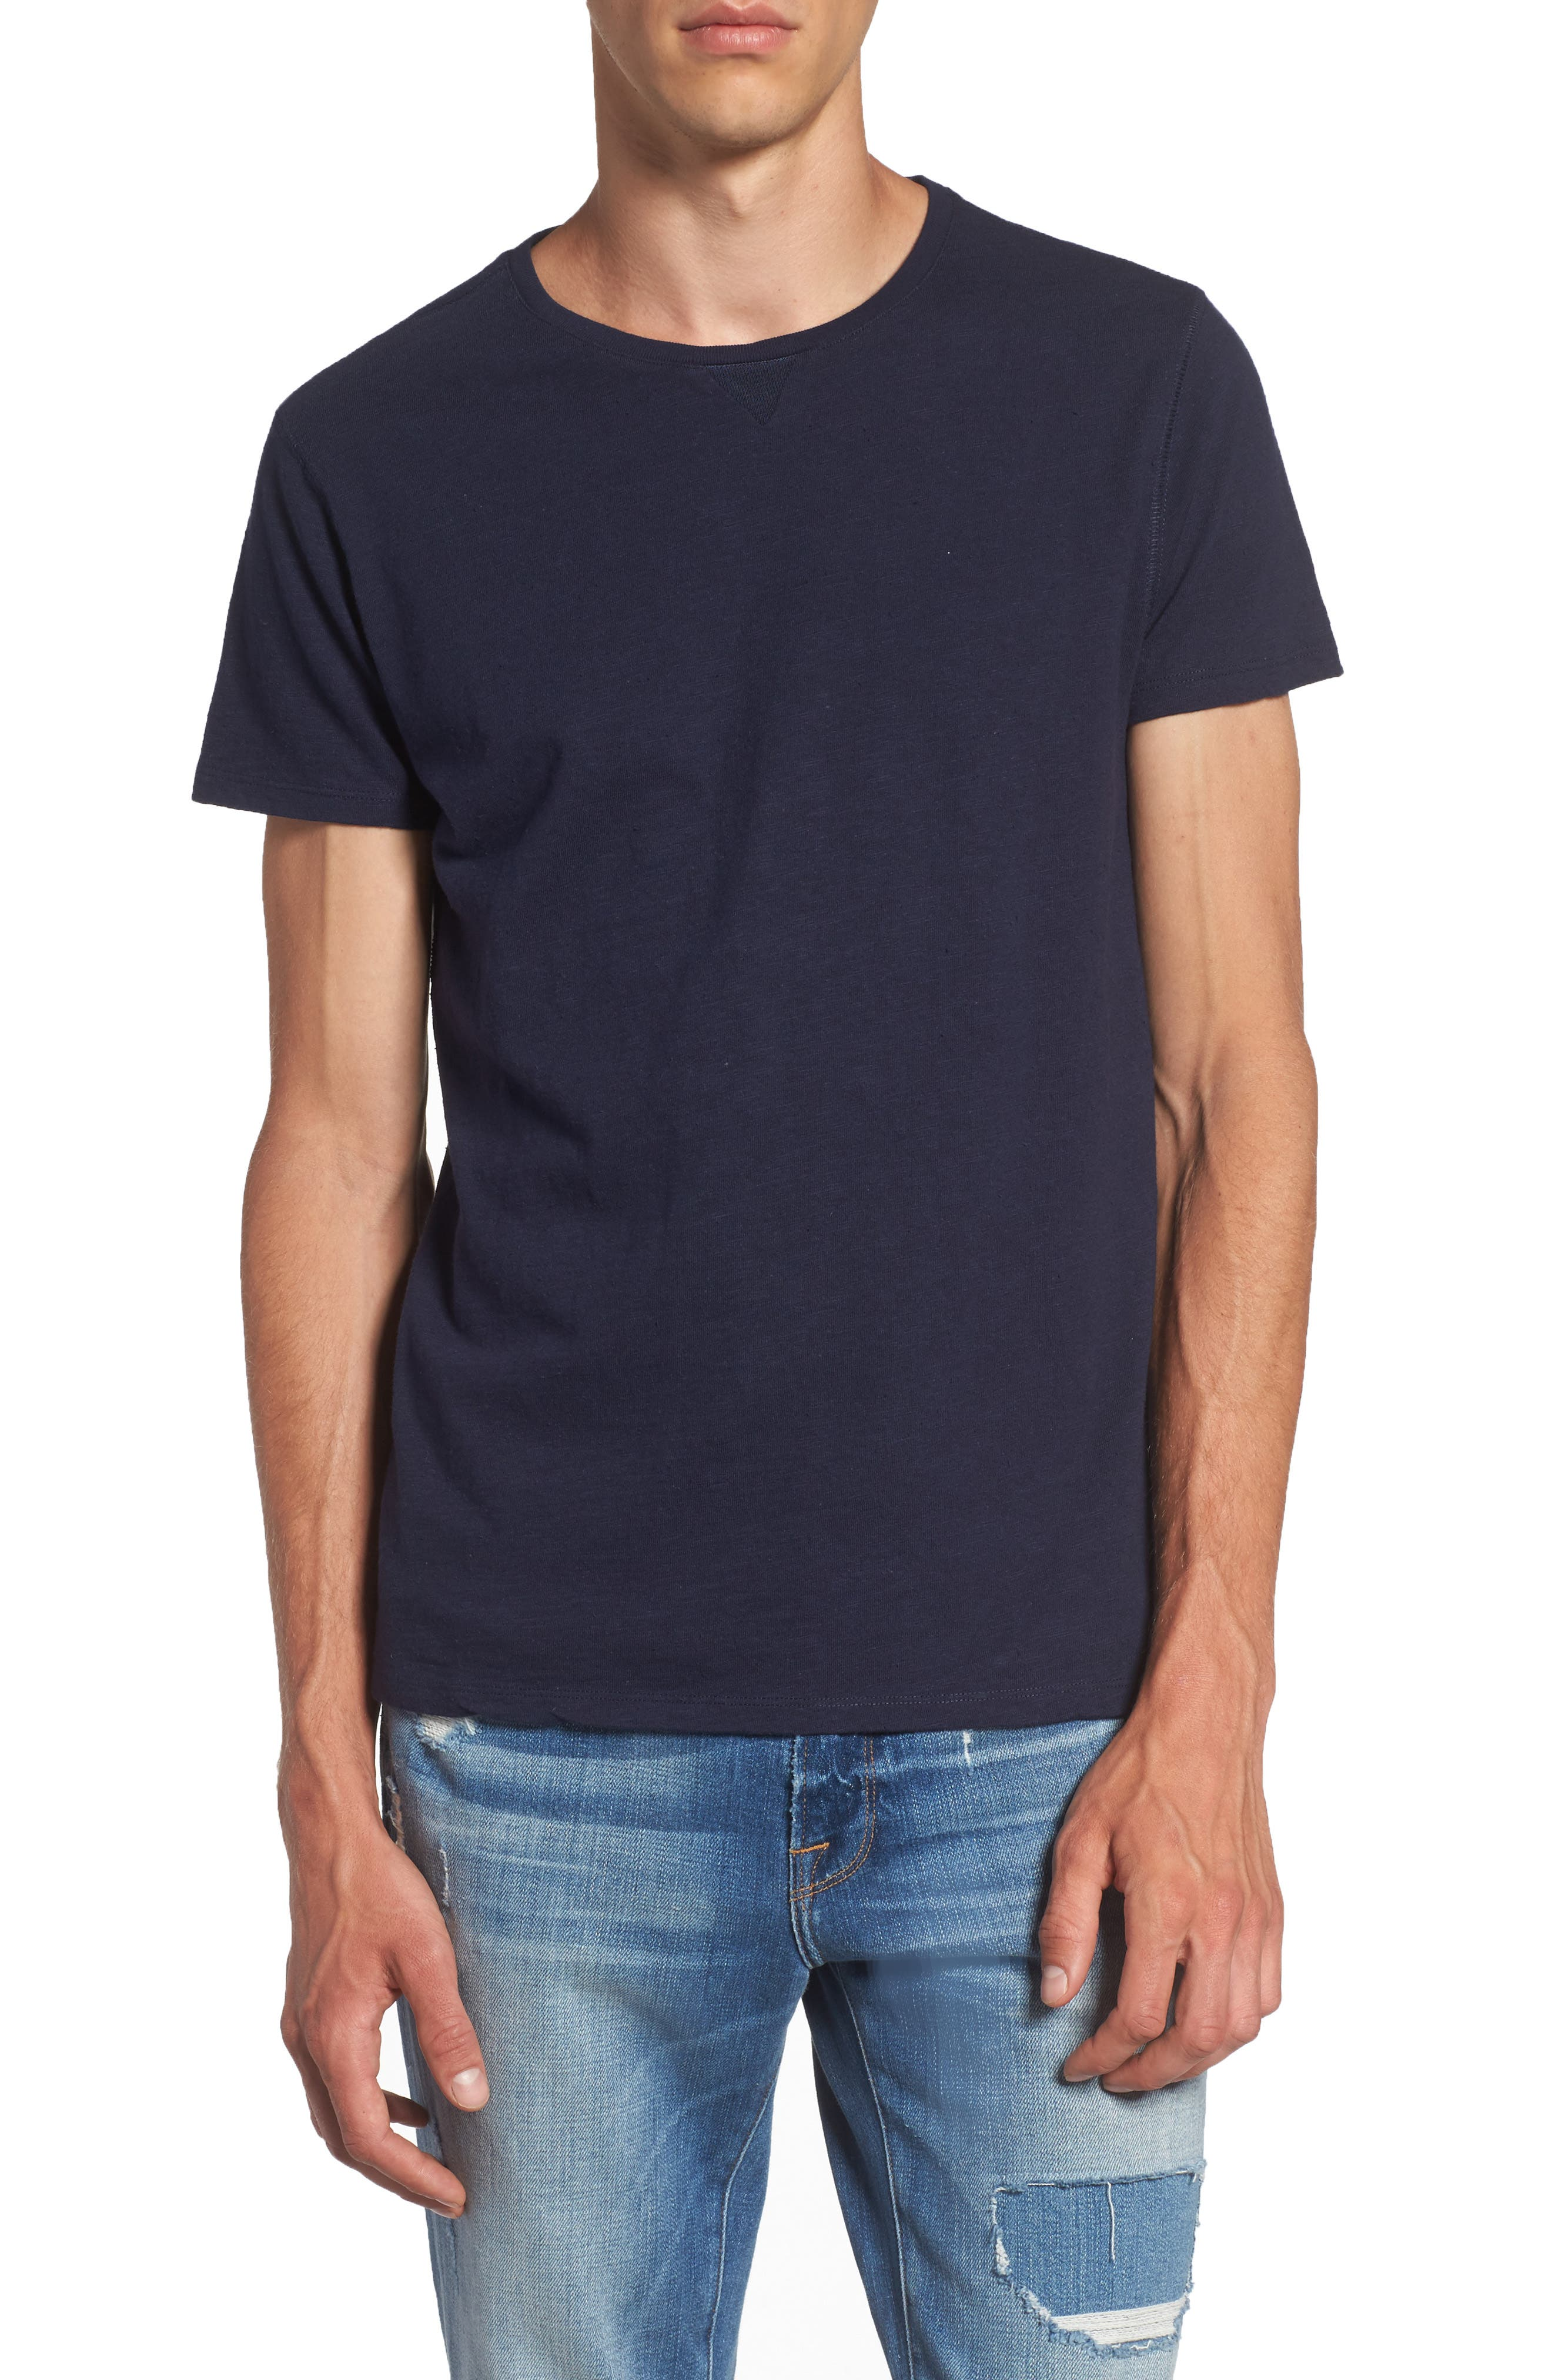 Scotch & Soda Home Alone Classic T-Shirt